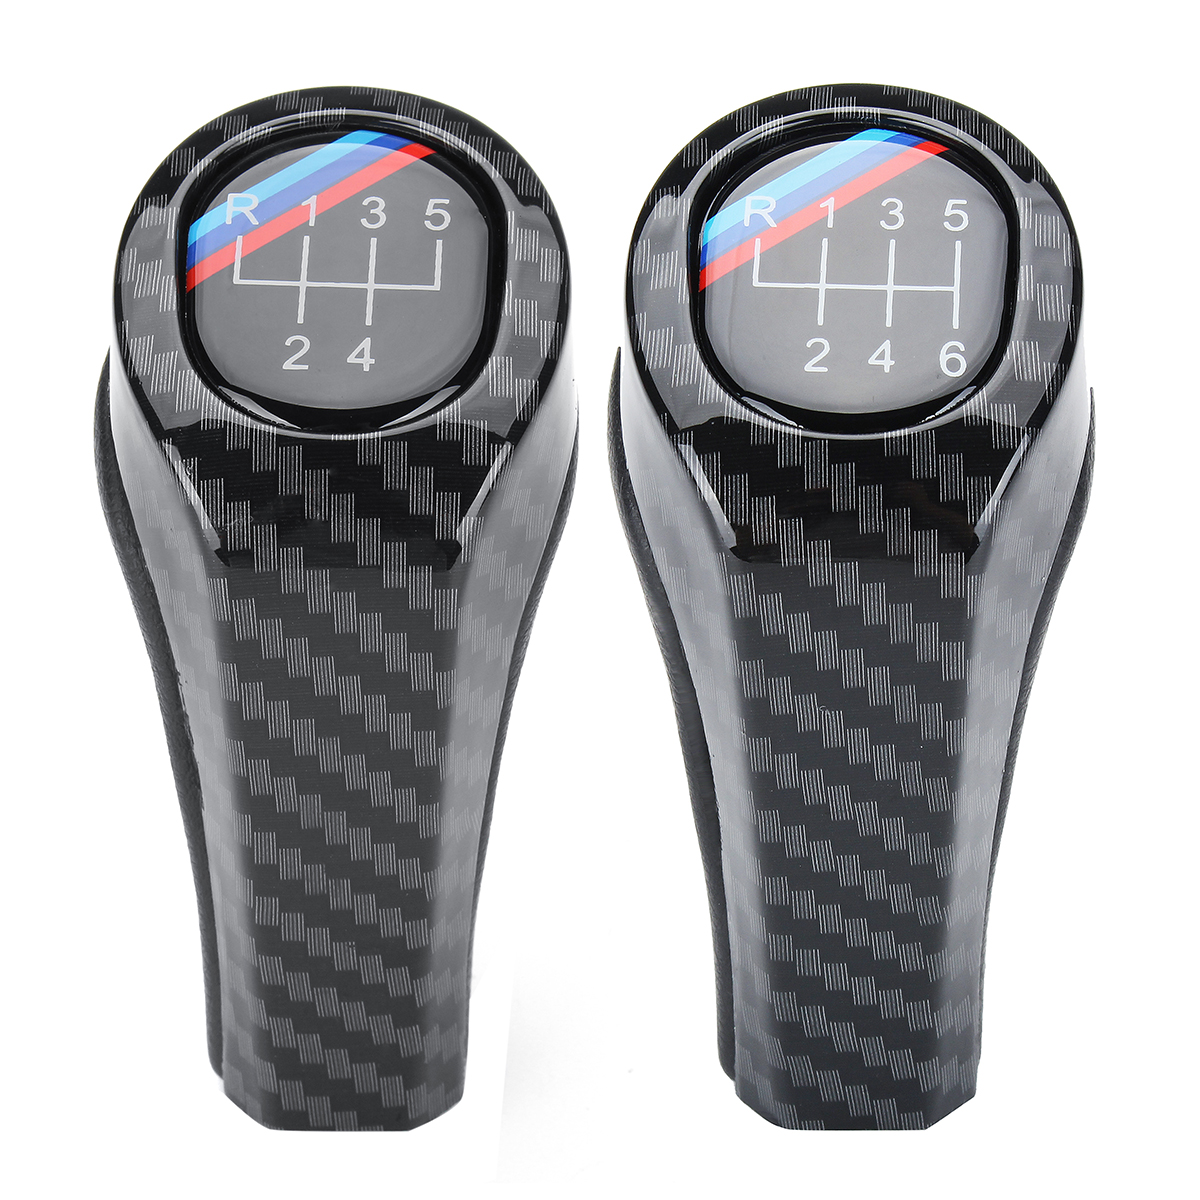 5 6 Speed Gear Shift Knob For BMW 3 5 7 Series E36 E46 E34 E39 E90